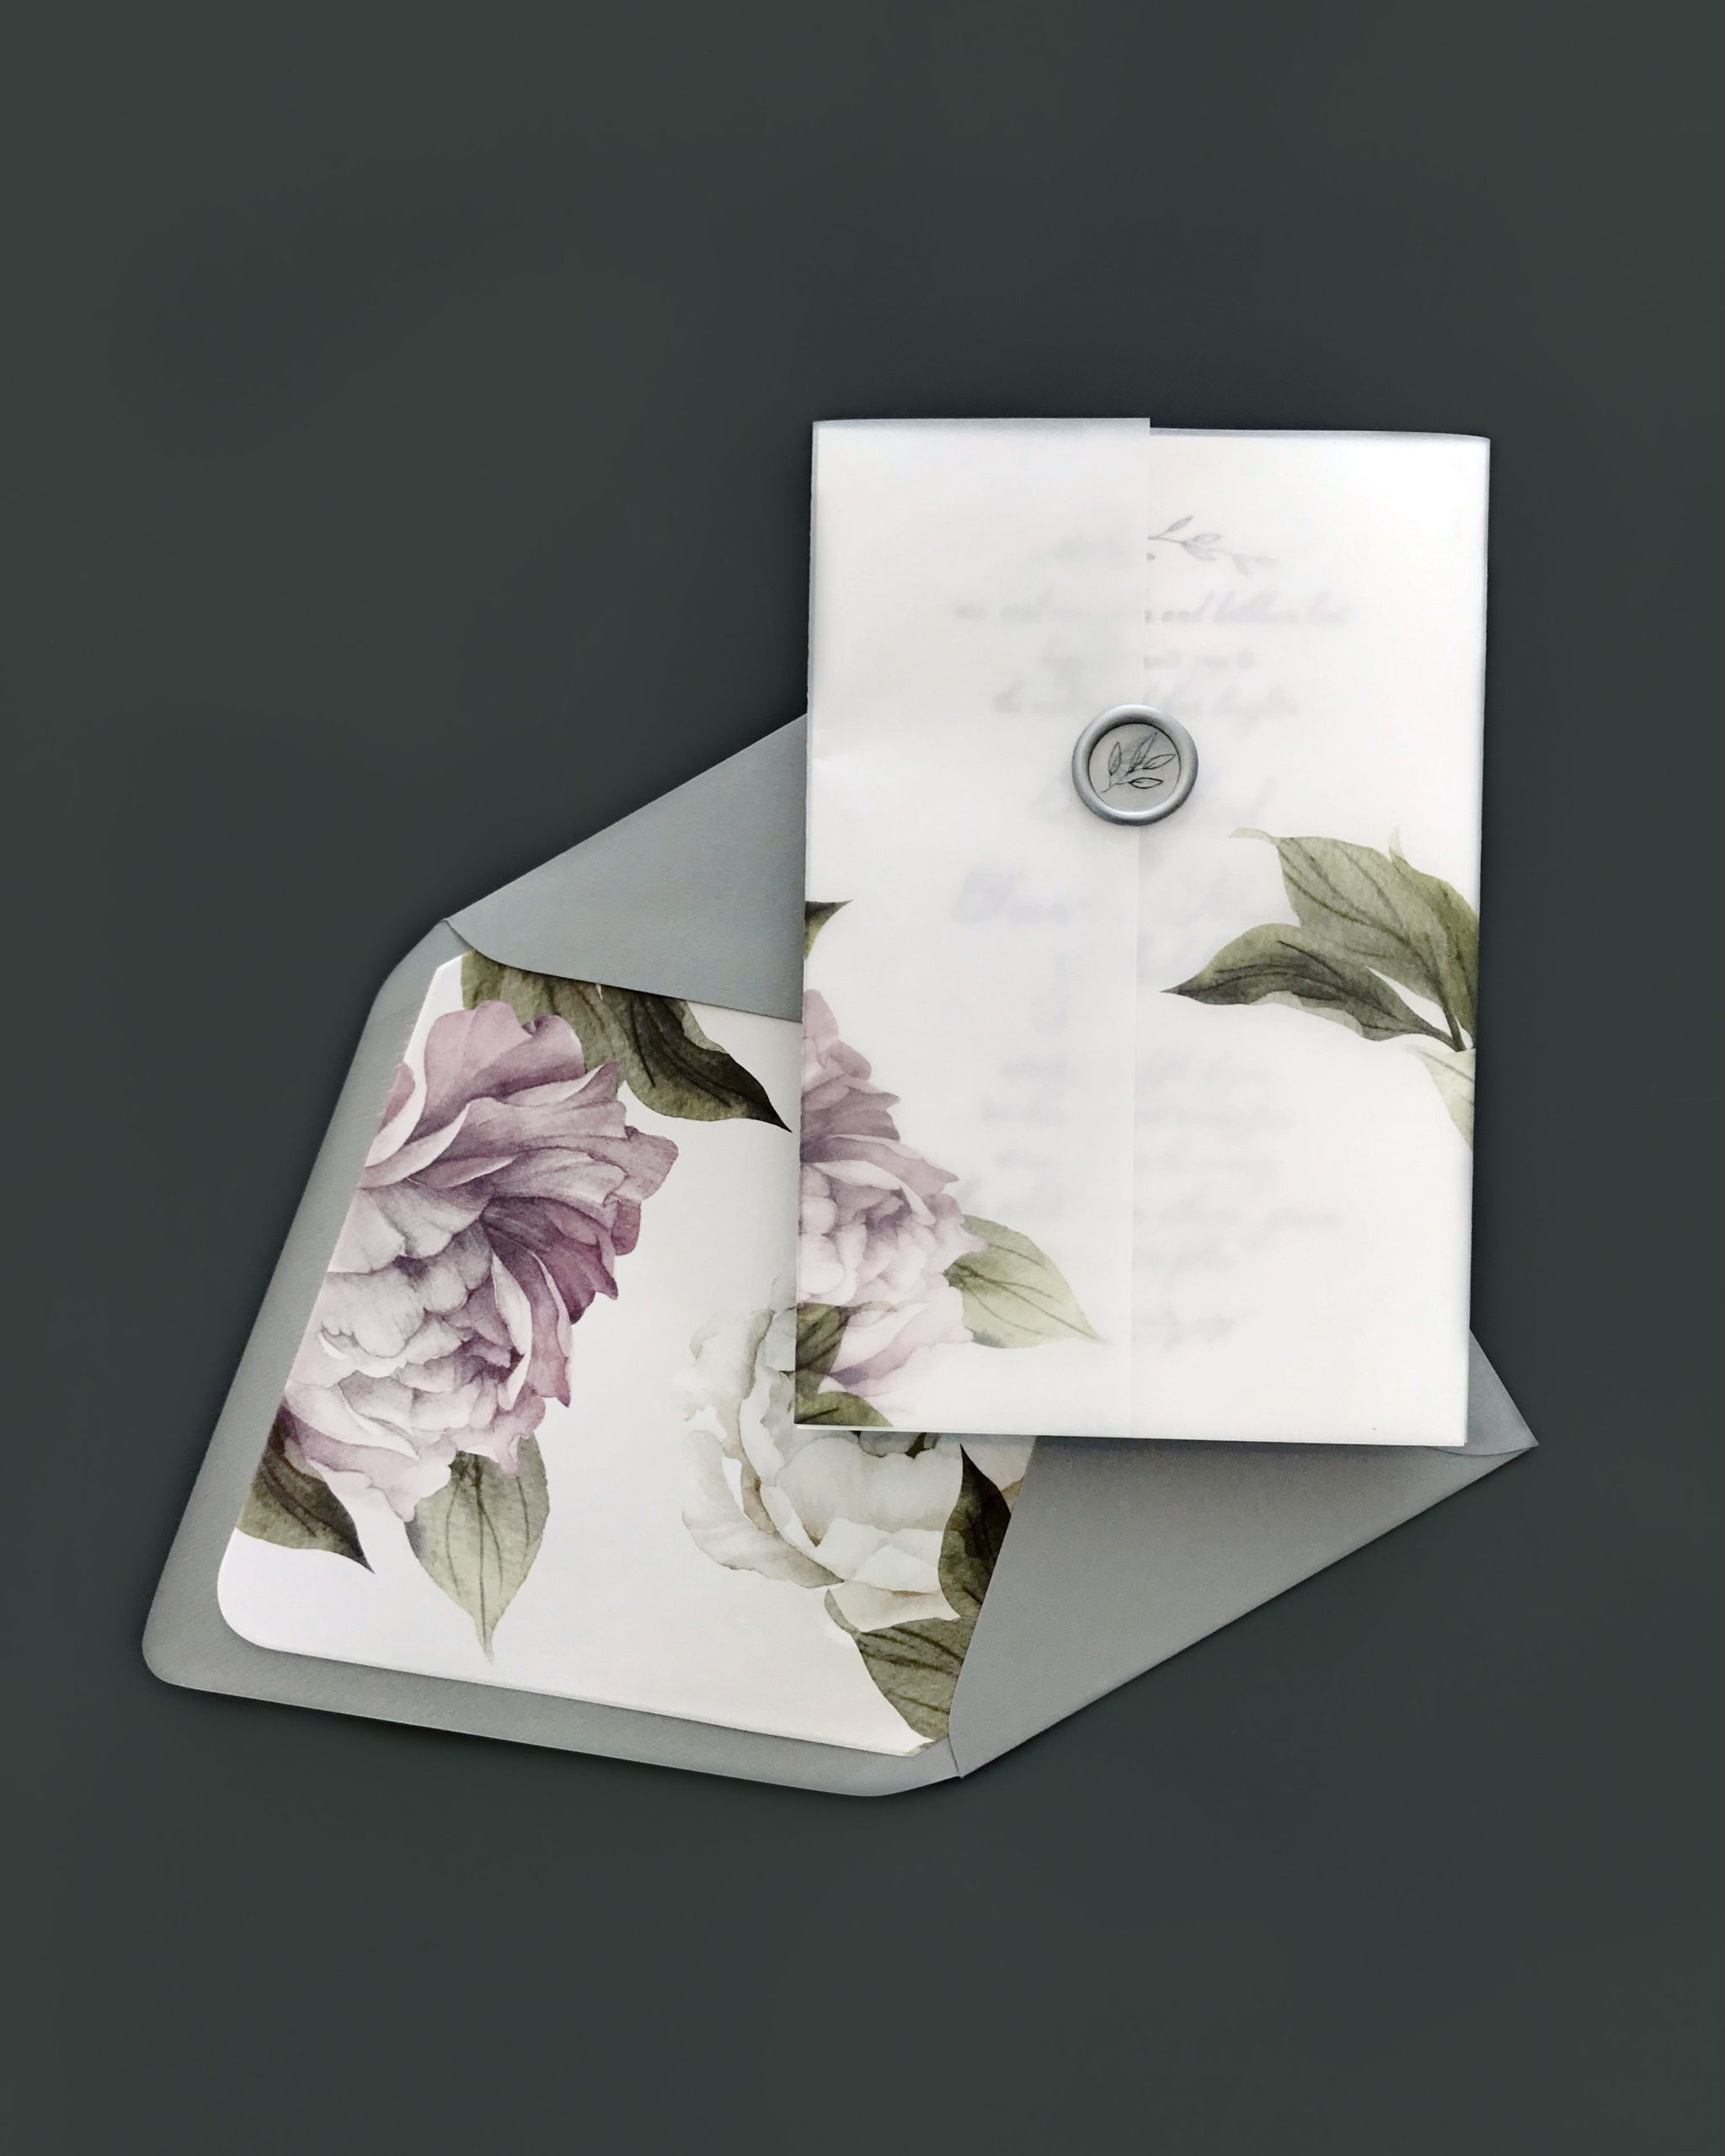 wrapped in floral printed vellum closed with a wax seal, this feminine wedding invitation is right on trend! The Smitten on Paper collection is available at Staccato in Fairfax, Virginia.